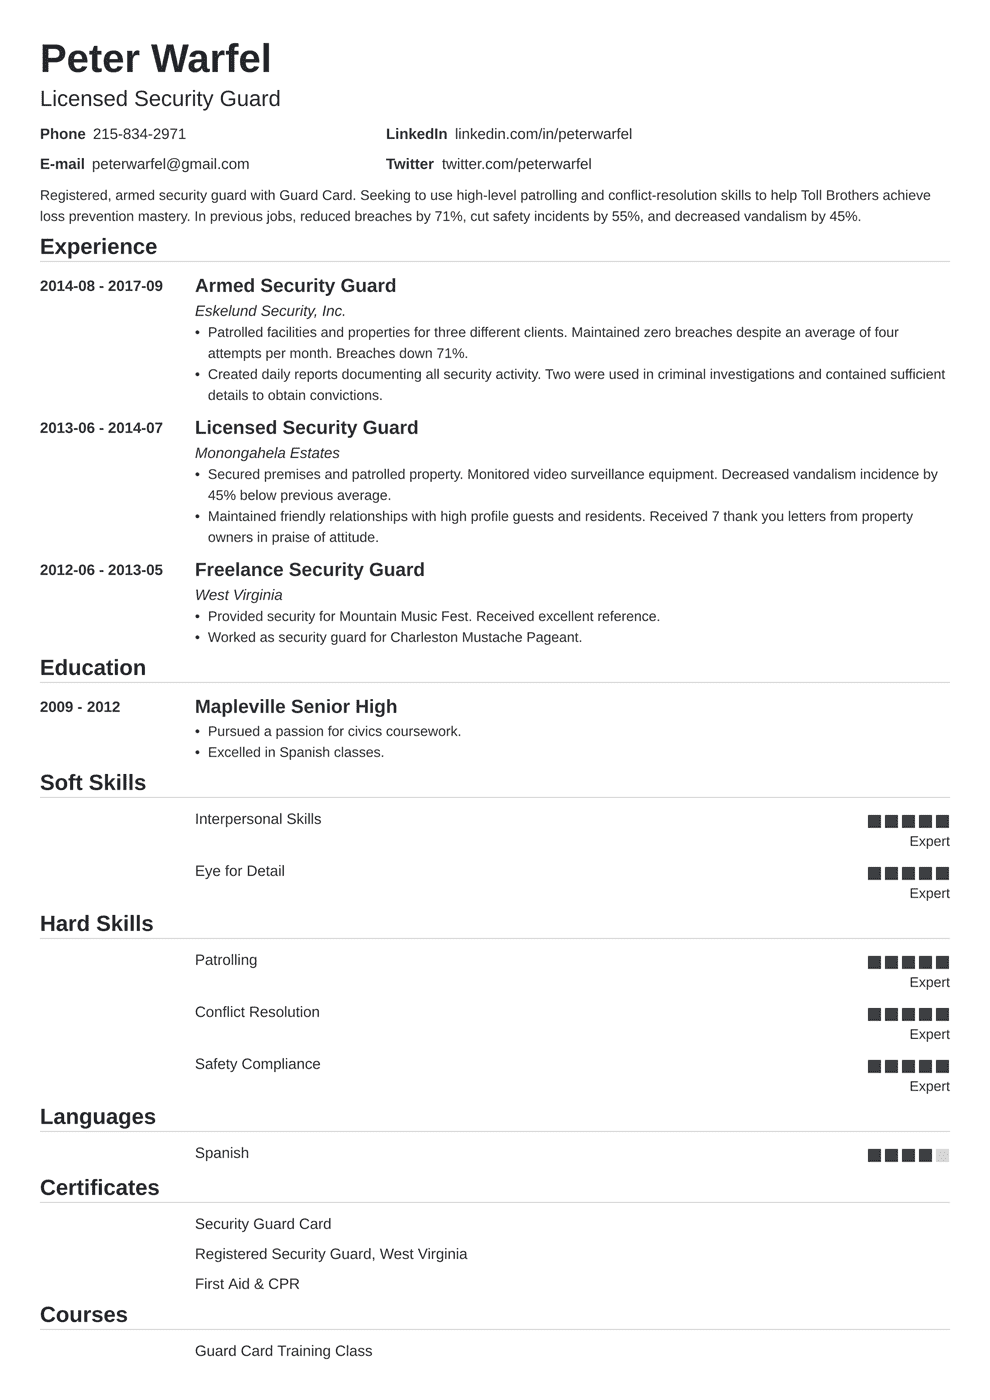 Security Guard Resume: Sample & Complete Guide [+20 Examples]